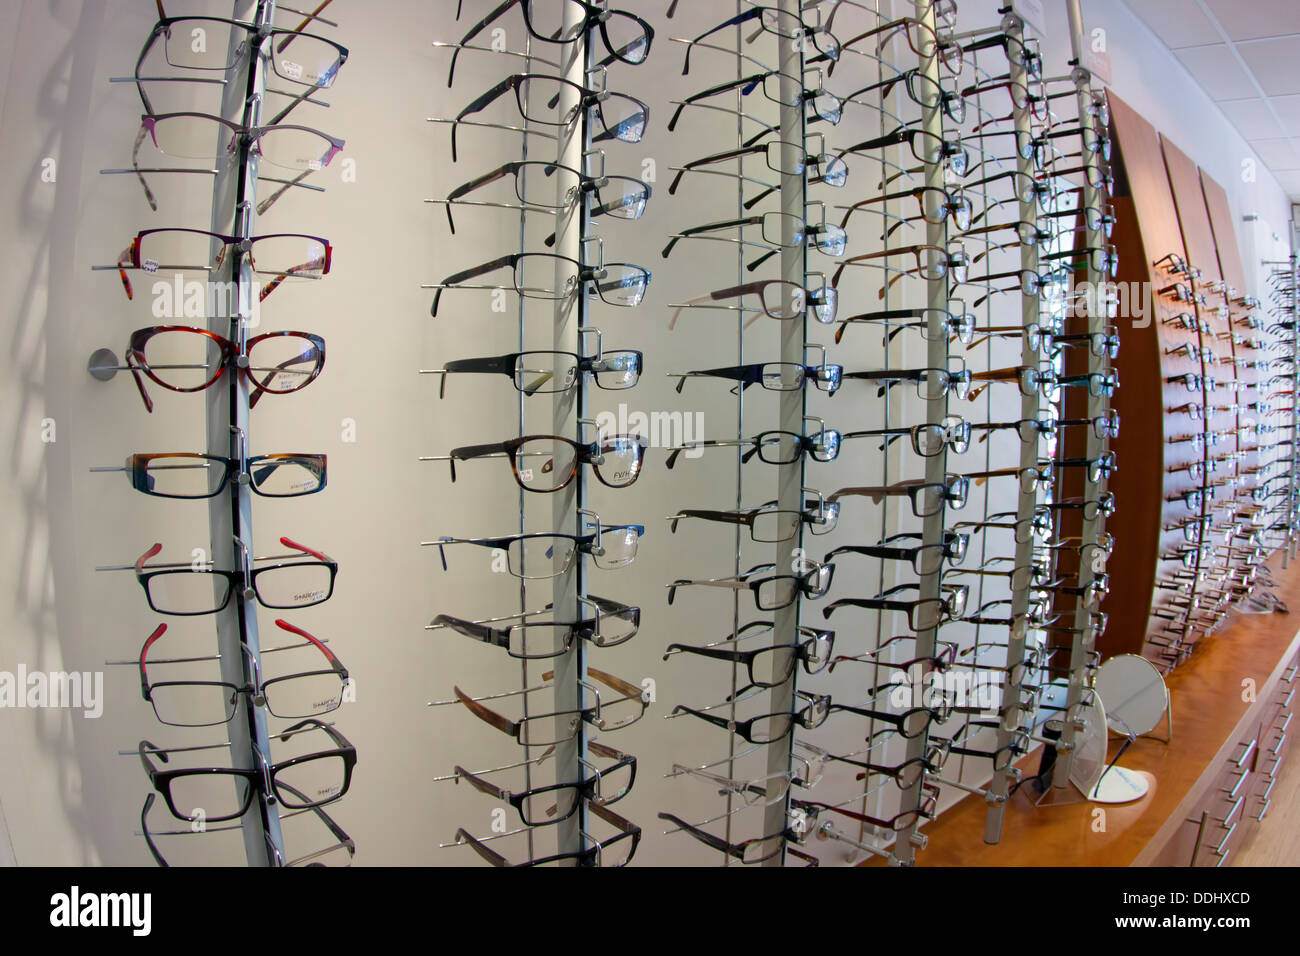 Opticians Spectacle Frame Display - Stock Image